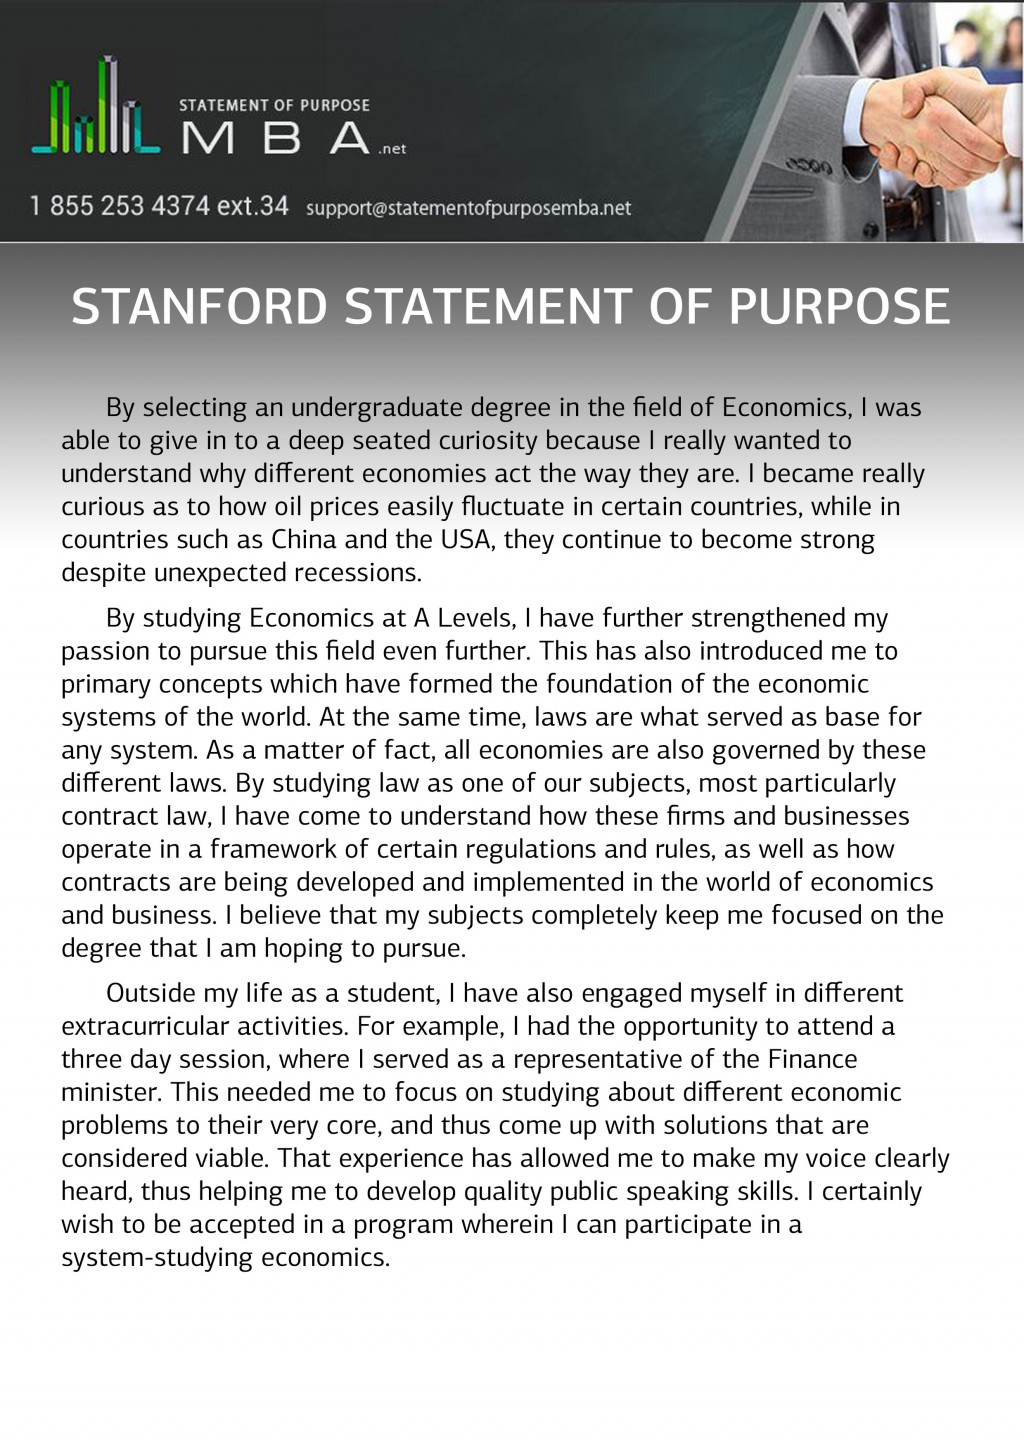 020 Stanford Statement Of Purpose Sample Essay Example Phenomenal Prompts Examples Application Large